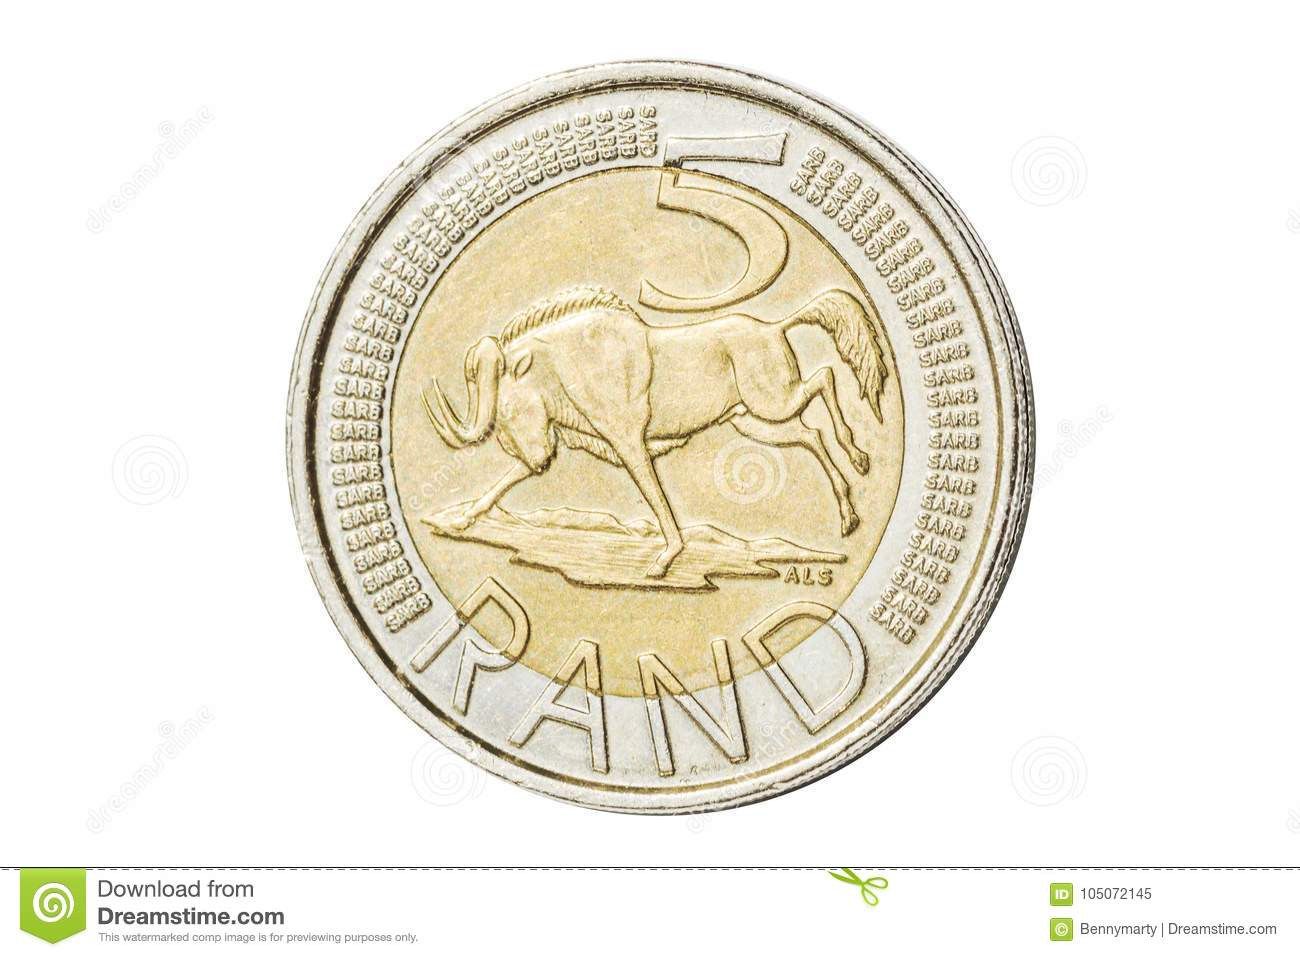 South African 5 Rand Coin Stock Image Image Of Fund 105072145